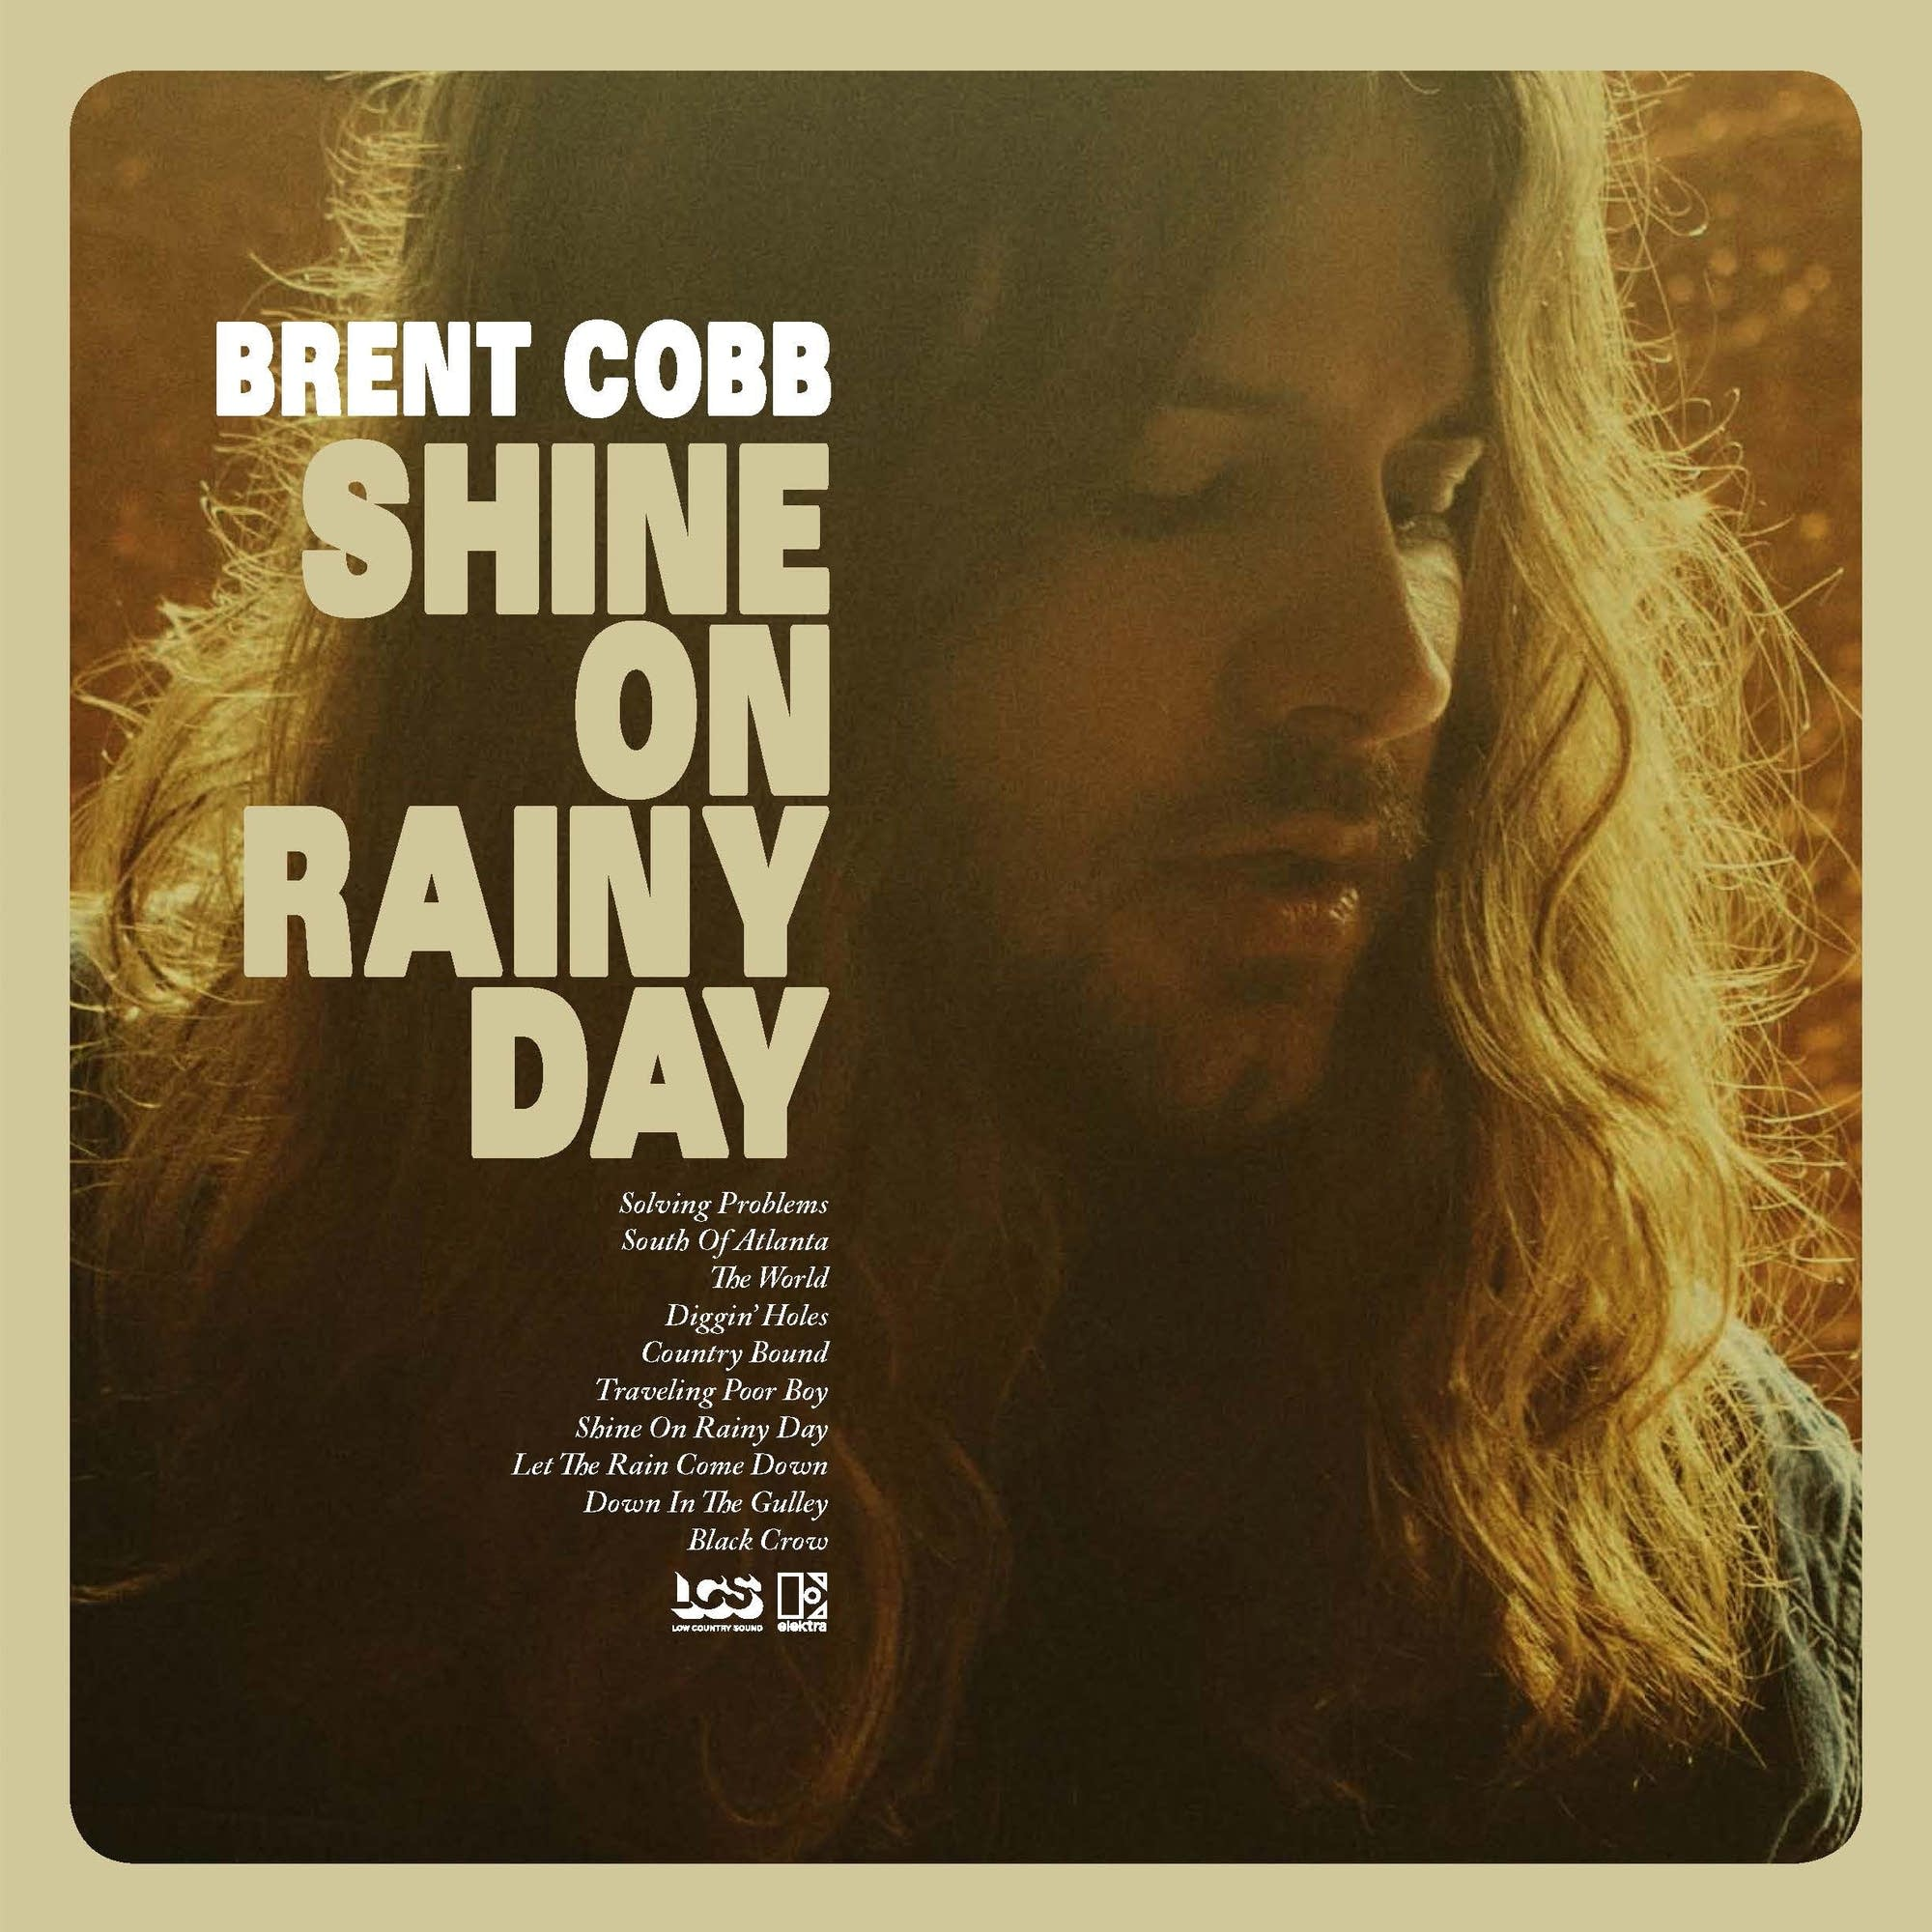 Image result for Brent Cobb - Shine on Rainy Day